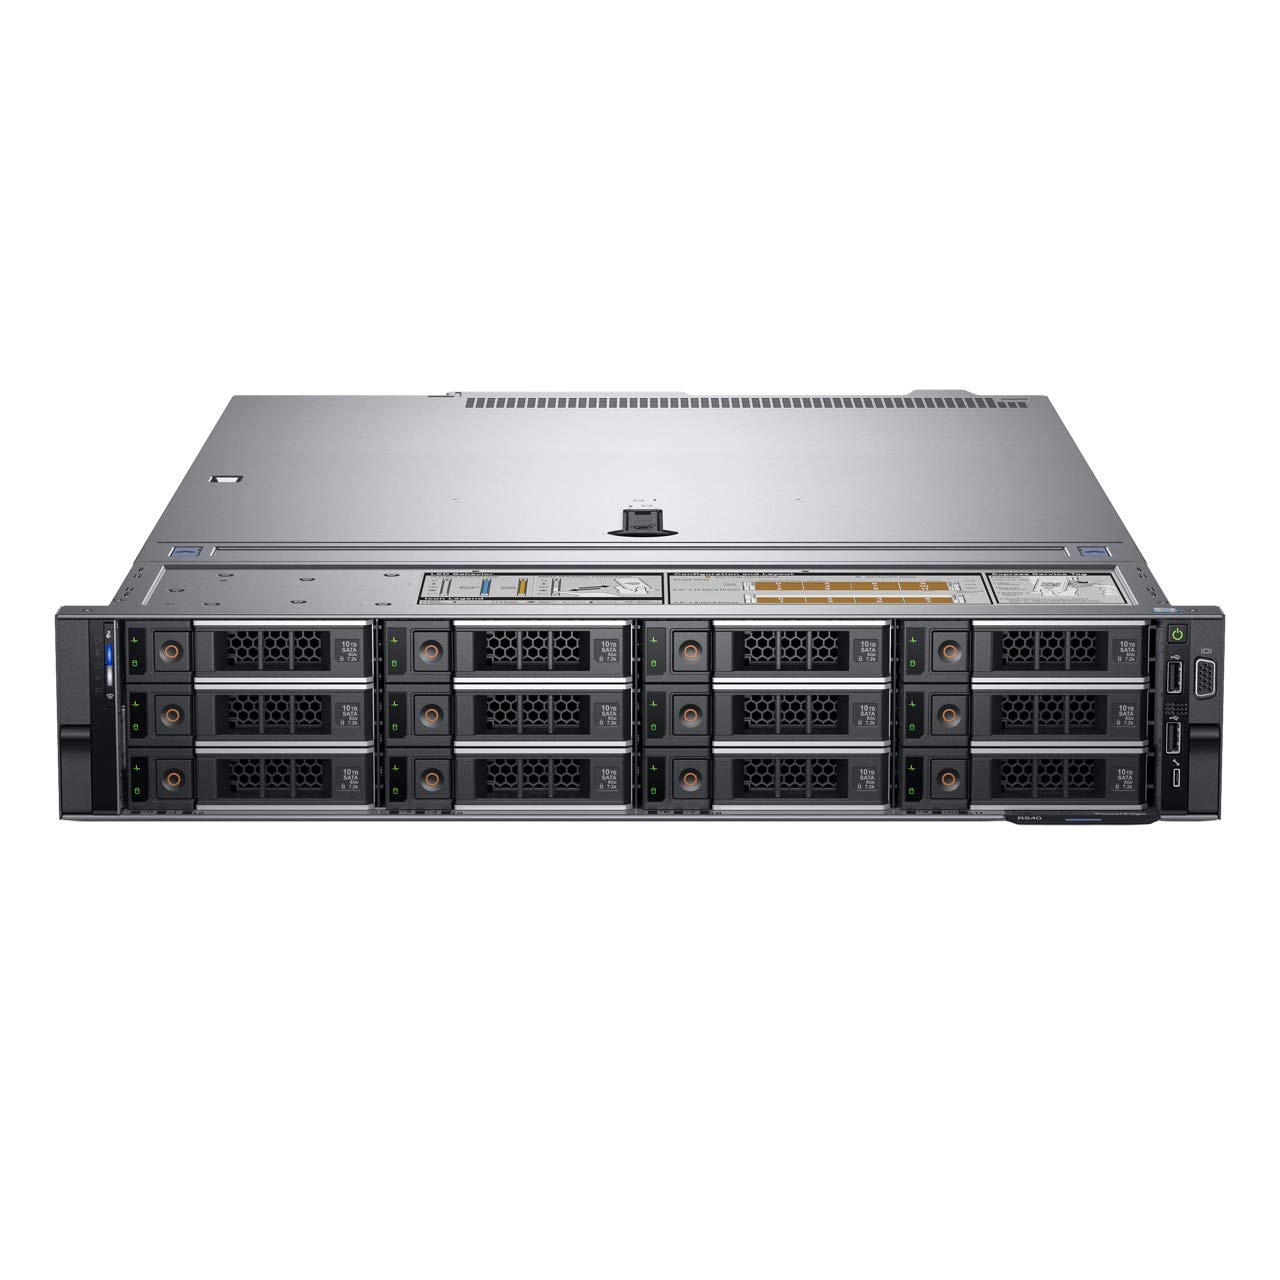 Dell PowerEdge R540 Rack Server, Intel Xeon 4110 with 16GB